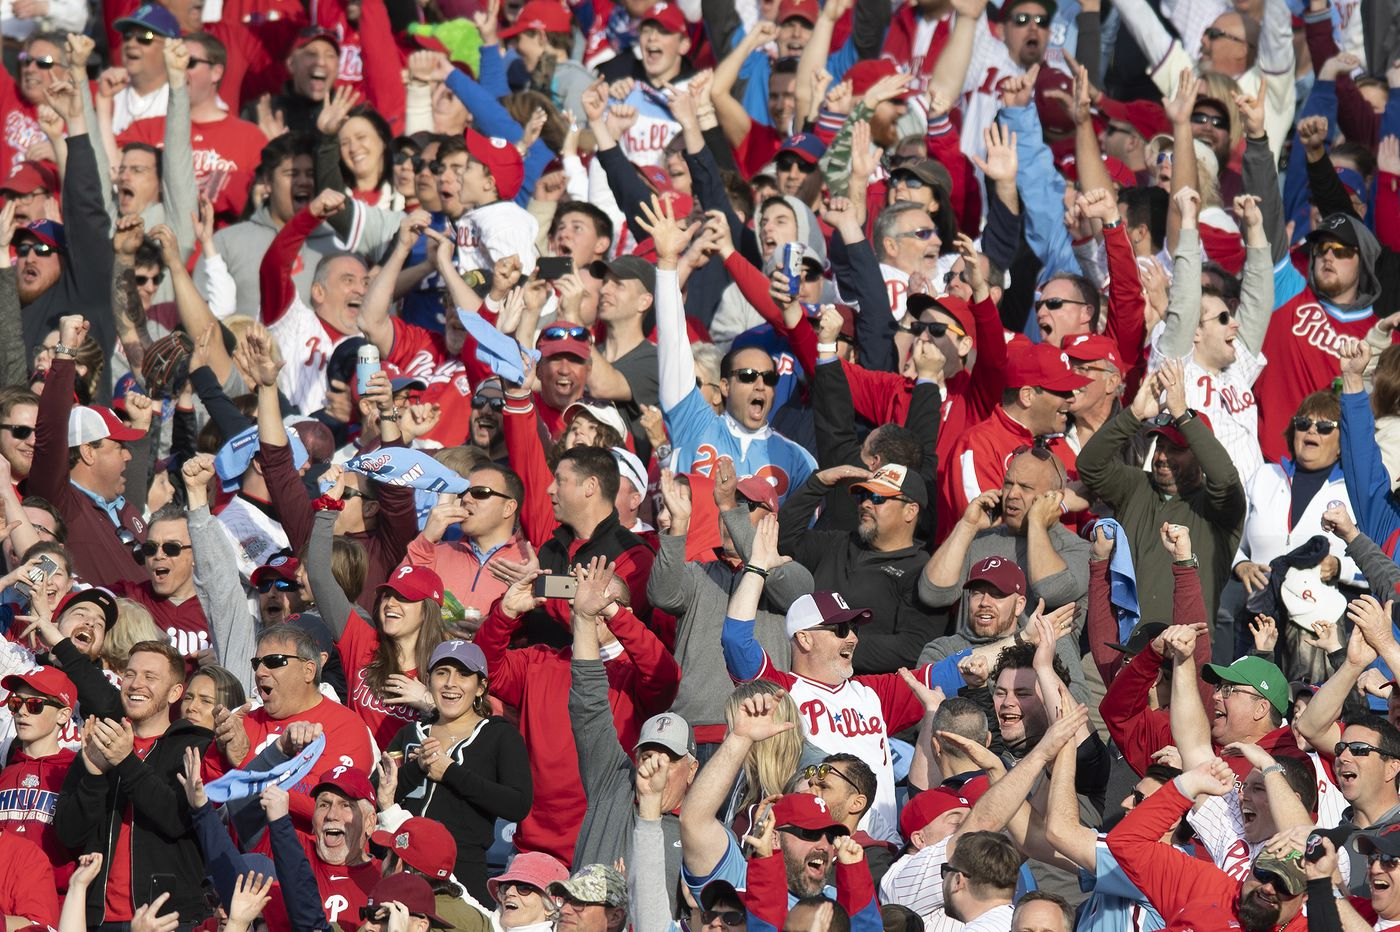 Phillies have fourth-highest attendance through first month of season